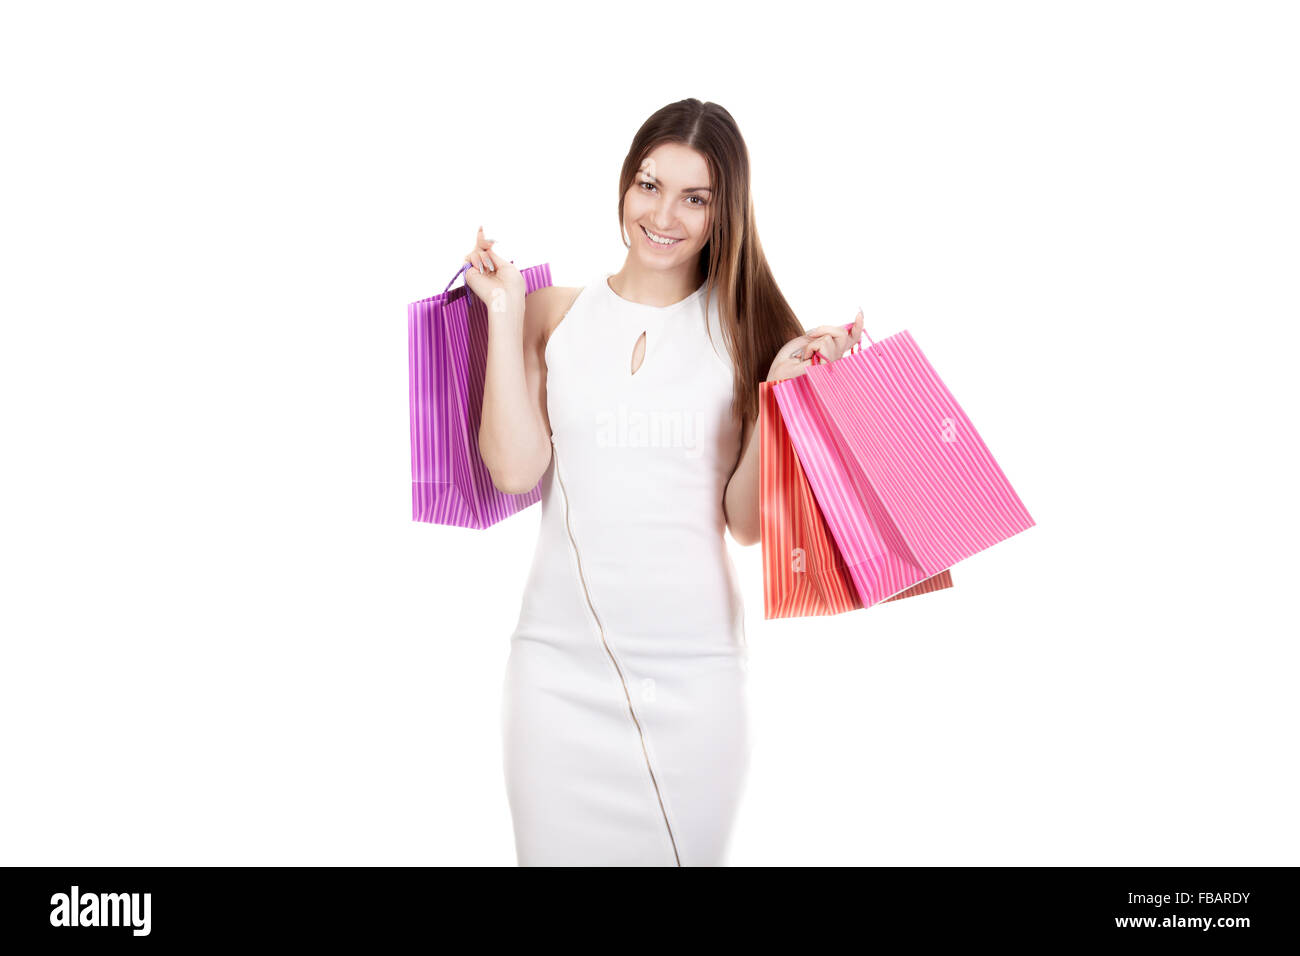 Smiling female holding colored shopping bags, copy space, isolated on white background. Concepts: sales, rest, stress - Stock Image